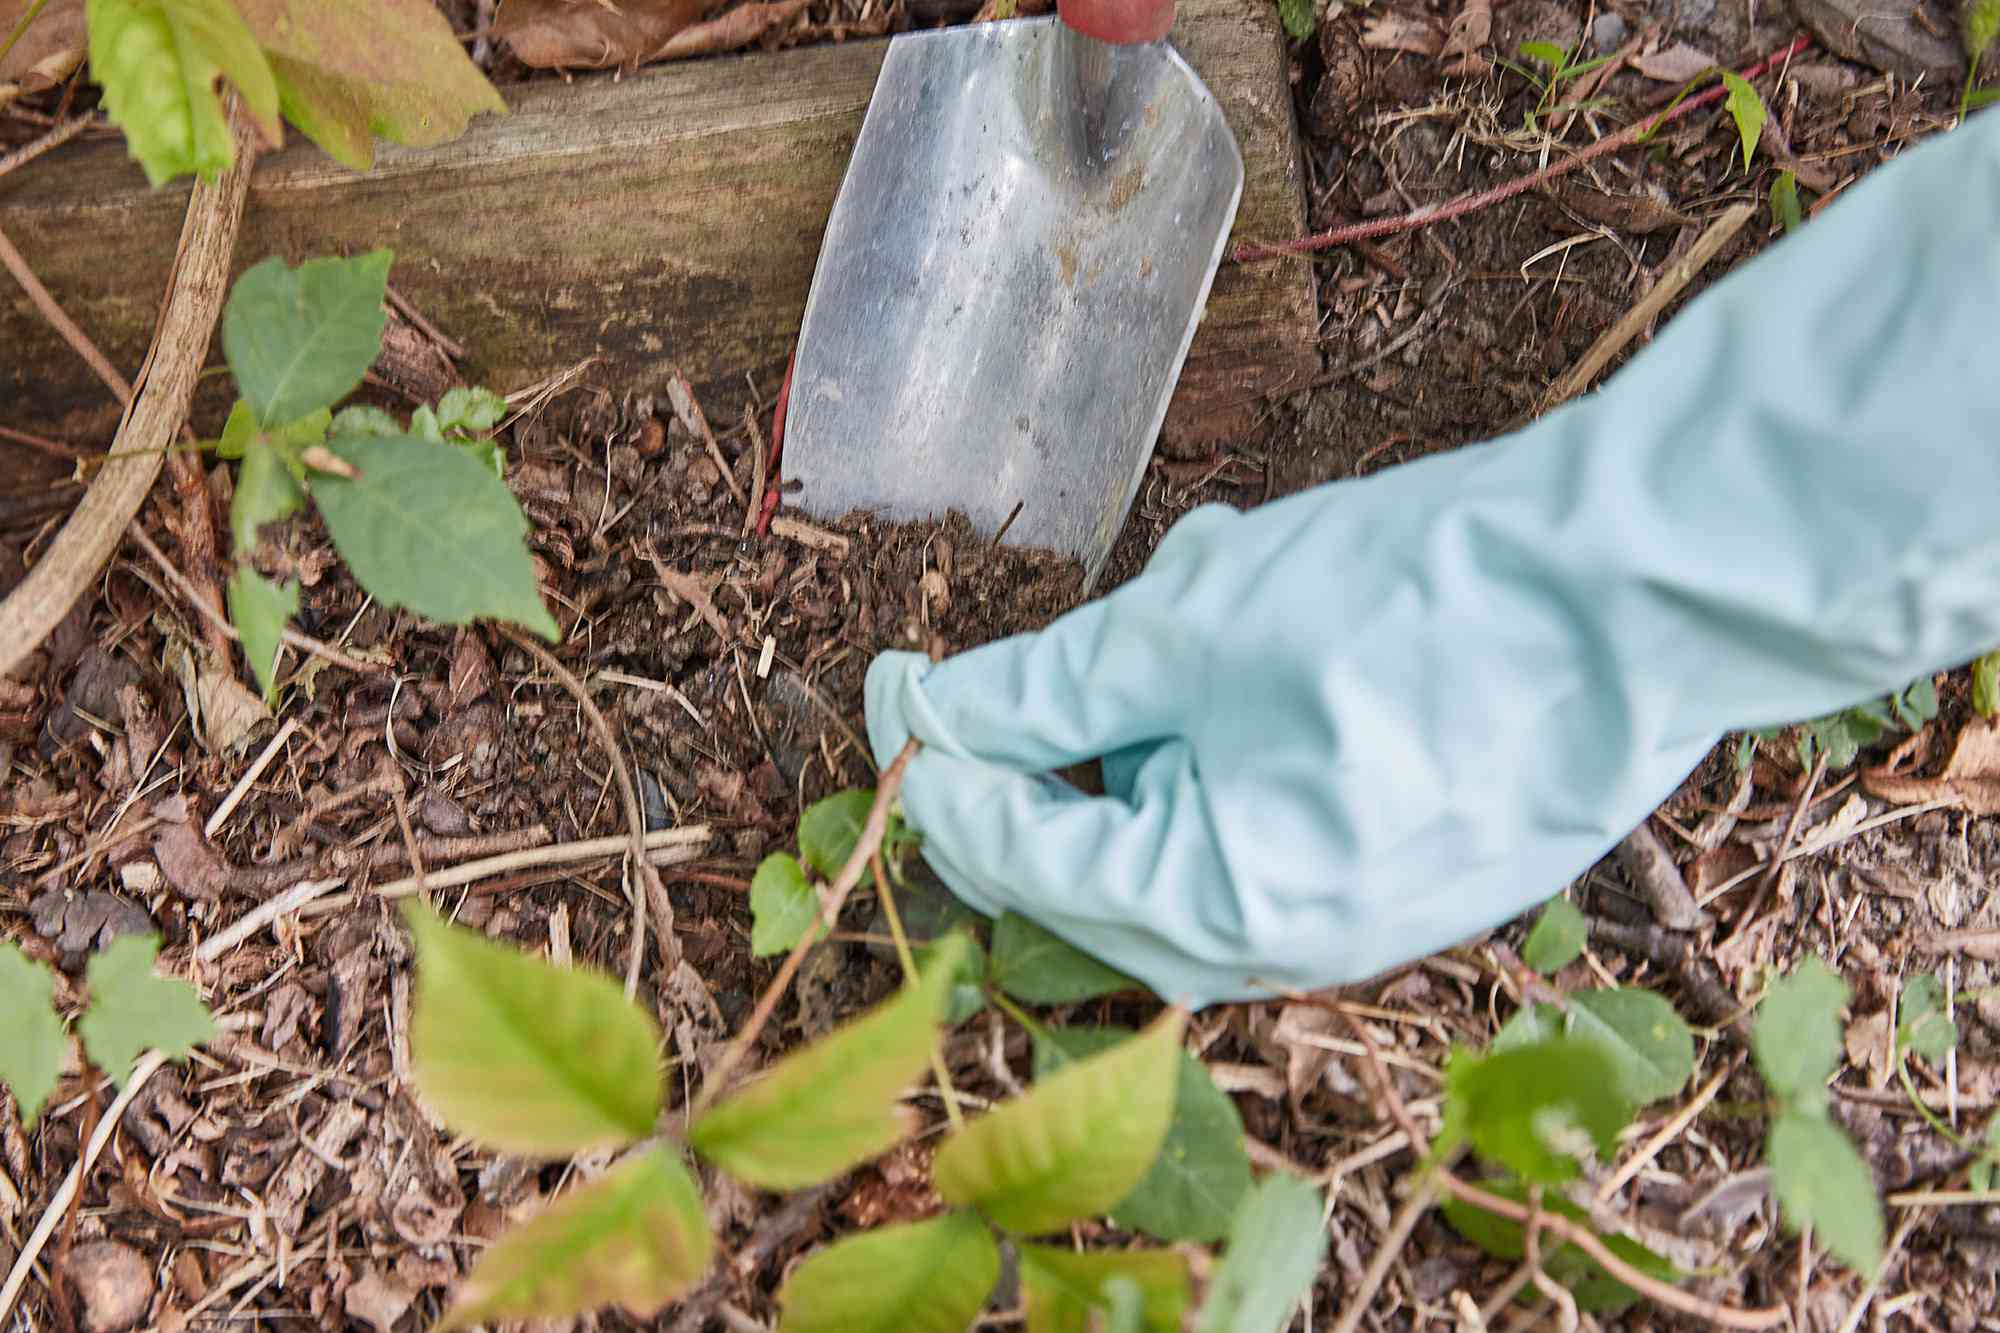 Handheld shovel digging out roots of poison ivy plants